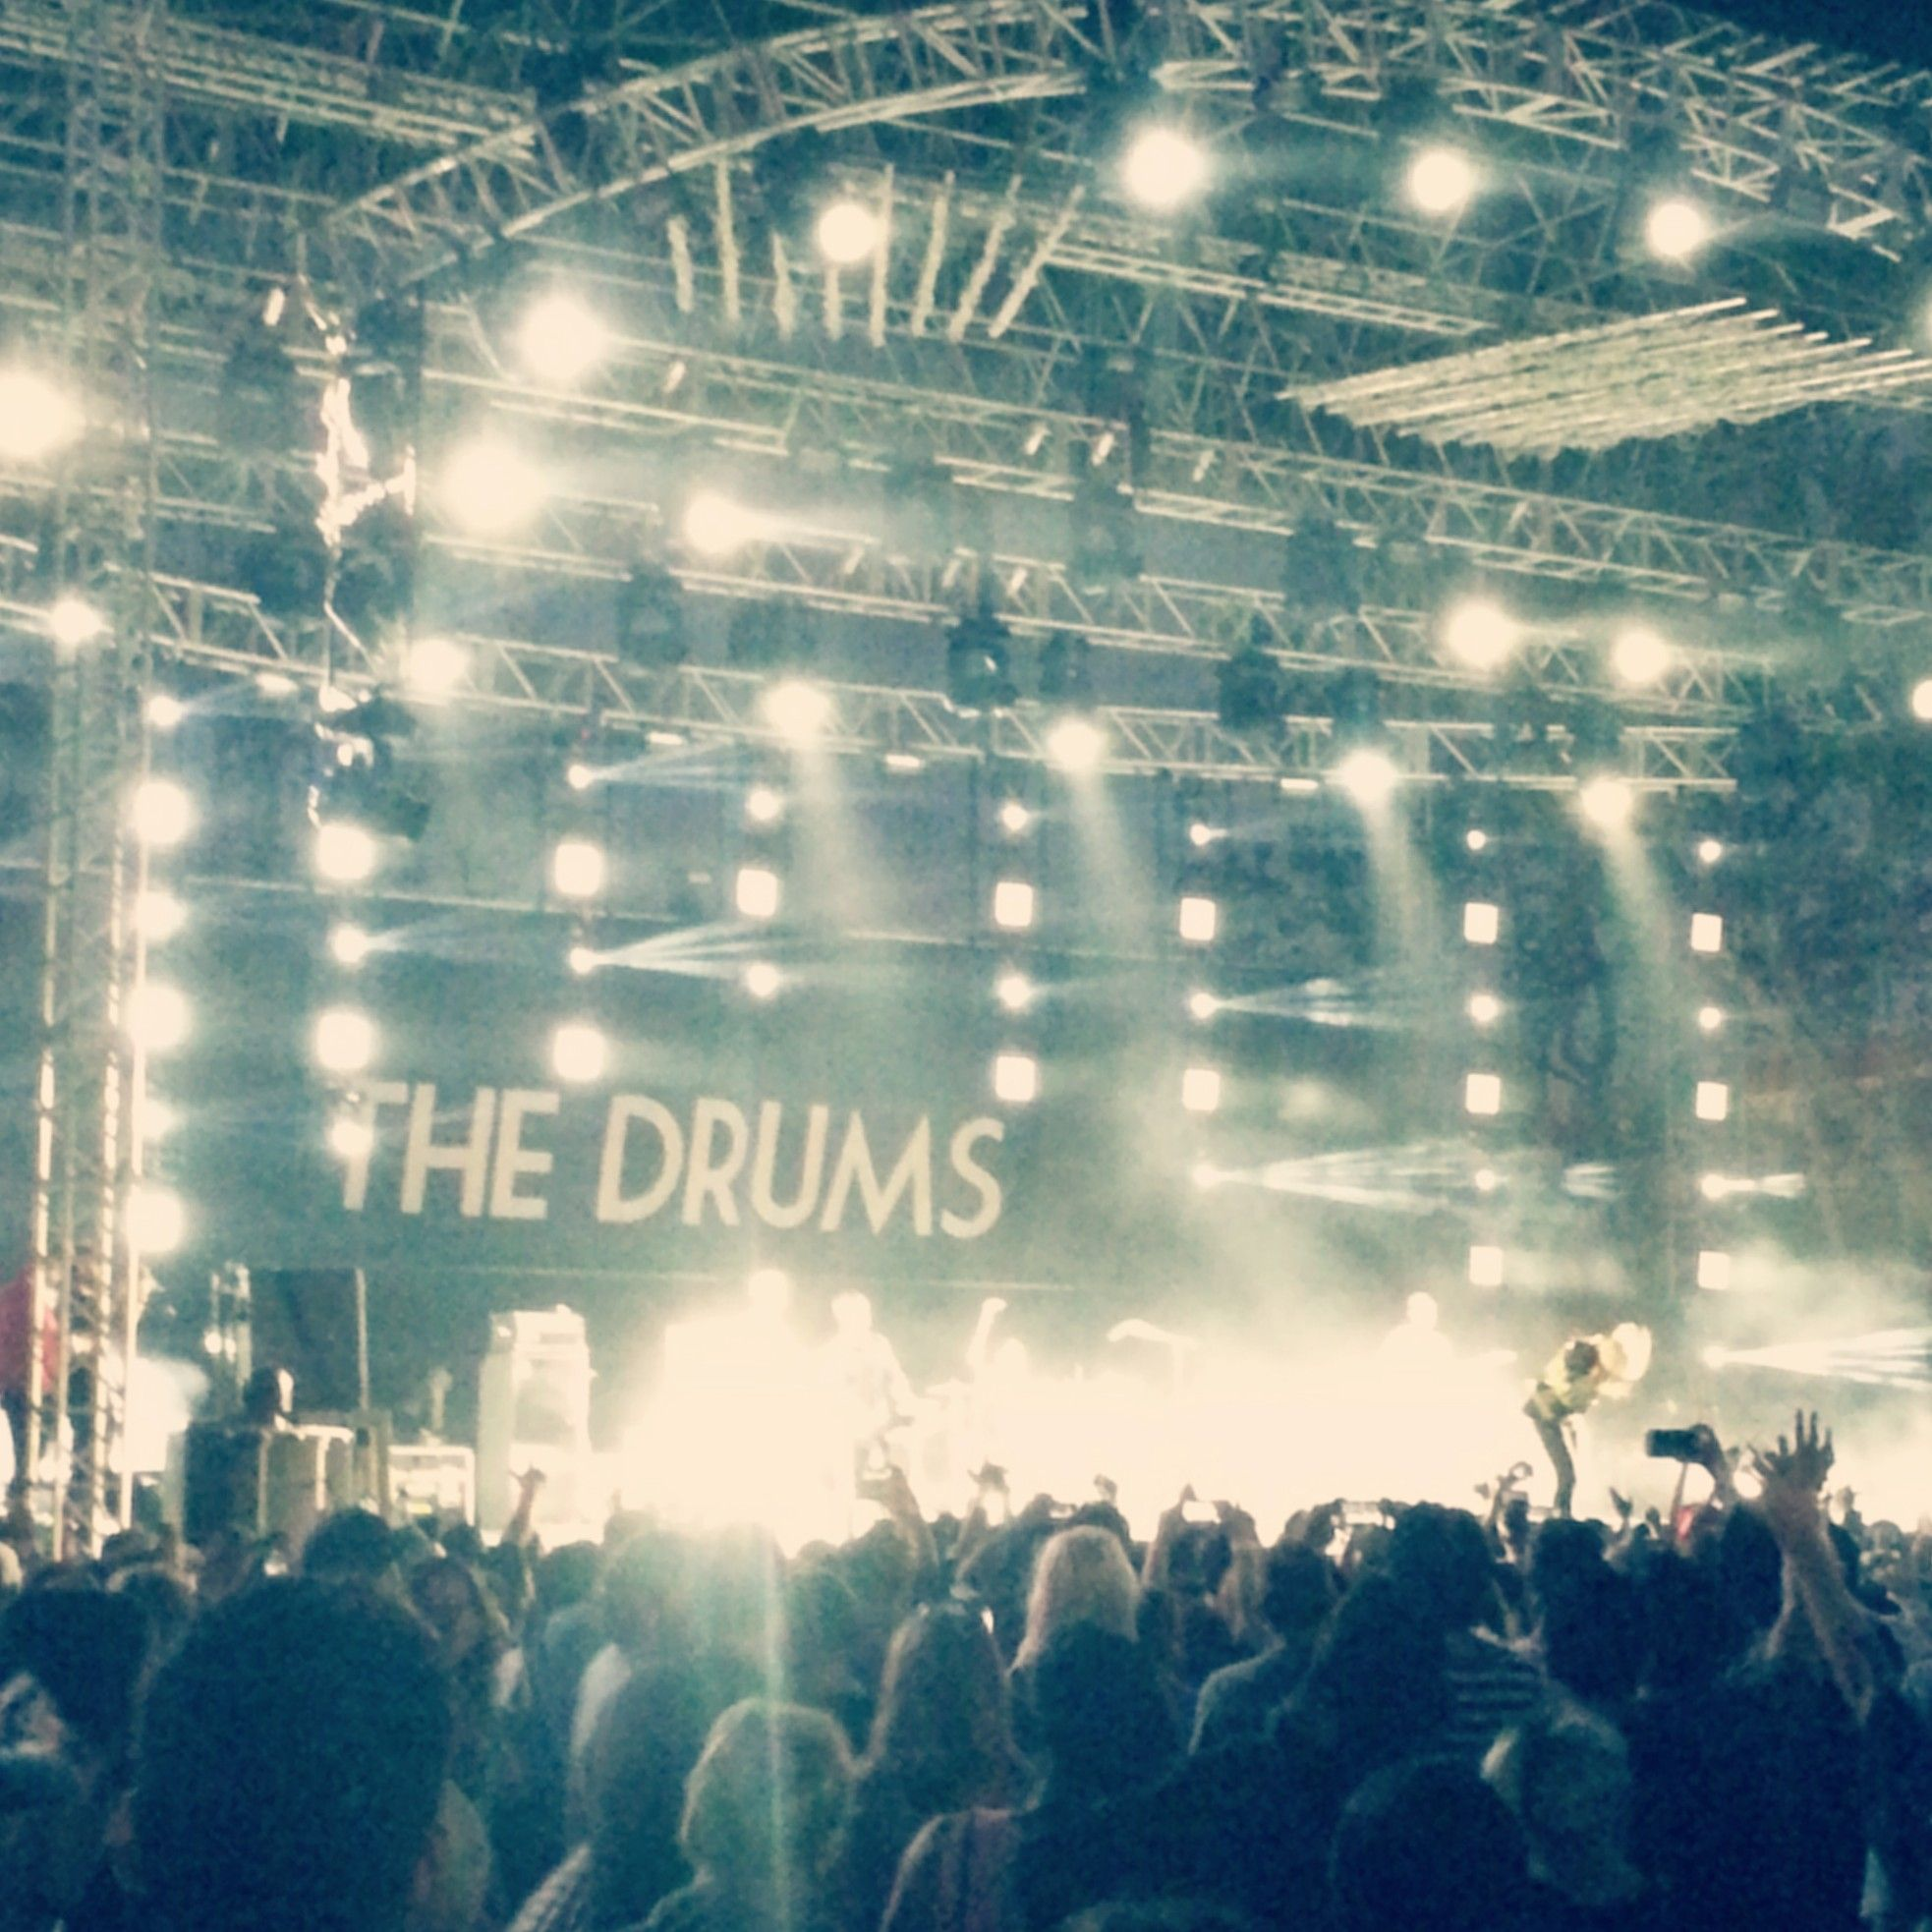 The Drums! Live pics & free playlist